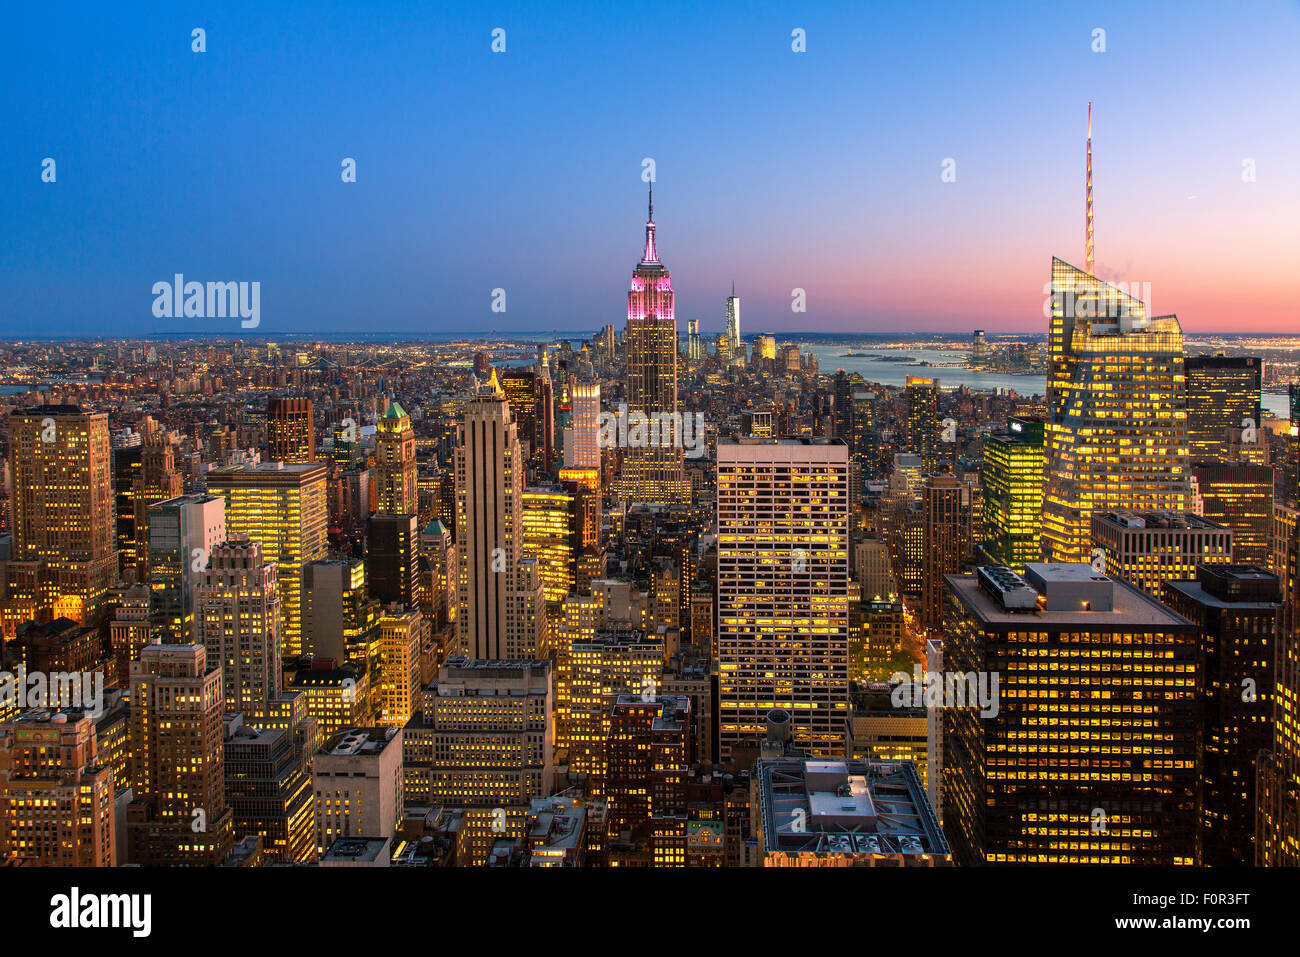 New York City, Empire State Building at Dusk Stock Photo